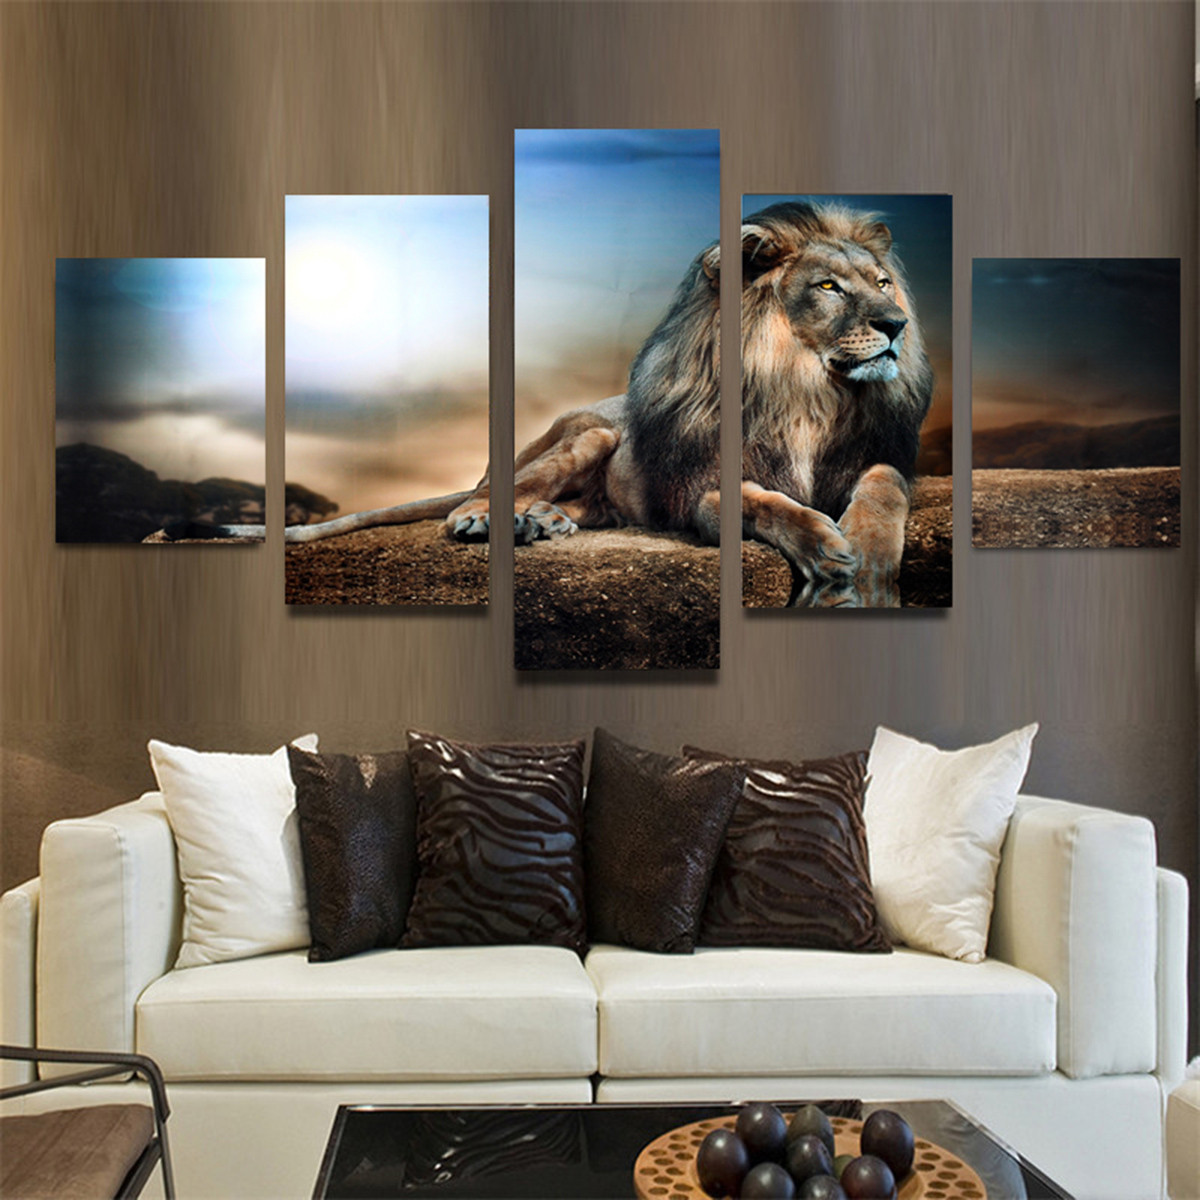 5PCS Frameless Canvas Print Sitting Lion Wall Art Painting Picture Home Decoration Paper Art